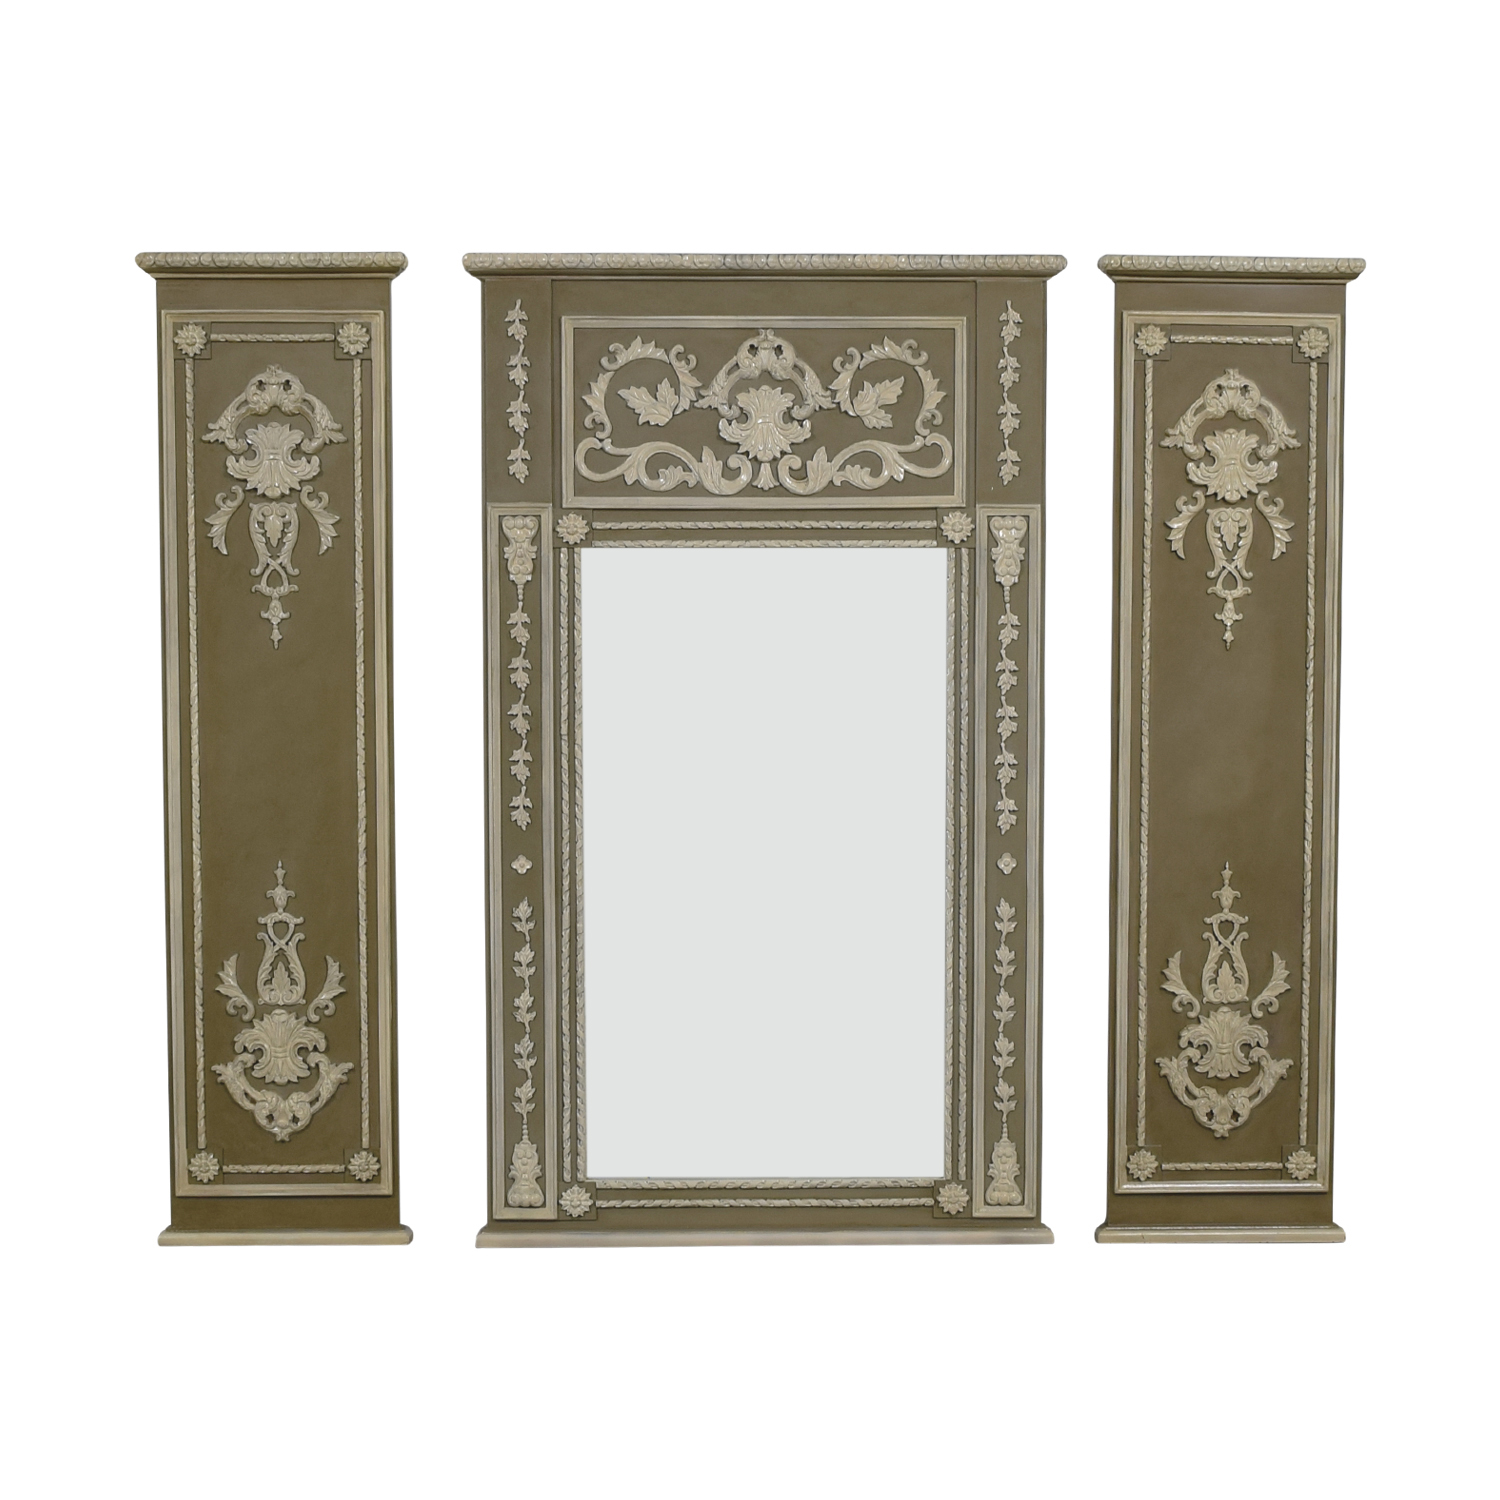 Trumeau Wall Mirror with Side Valance Panels nyc